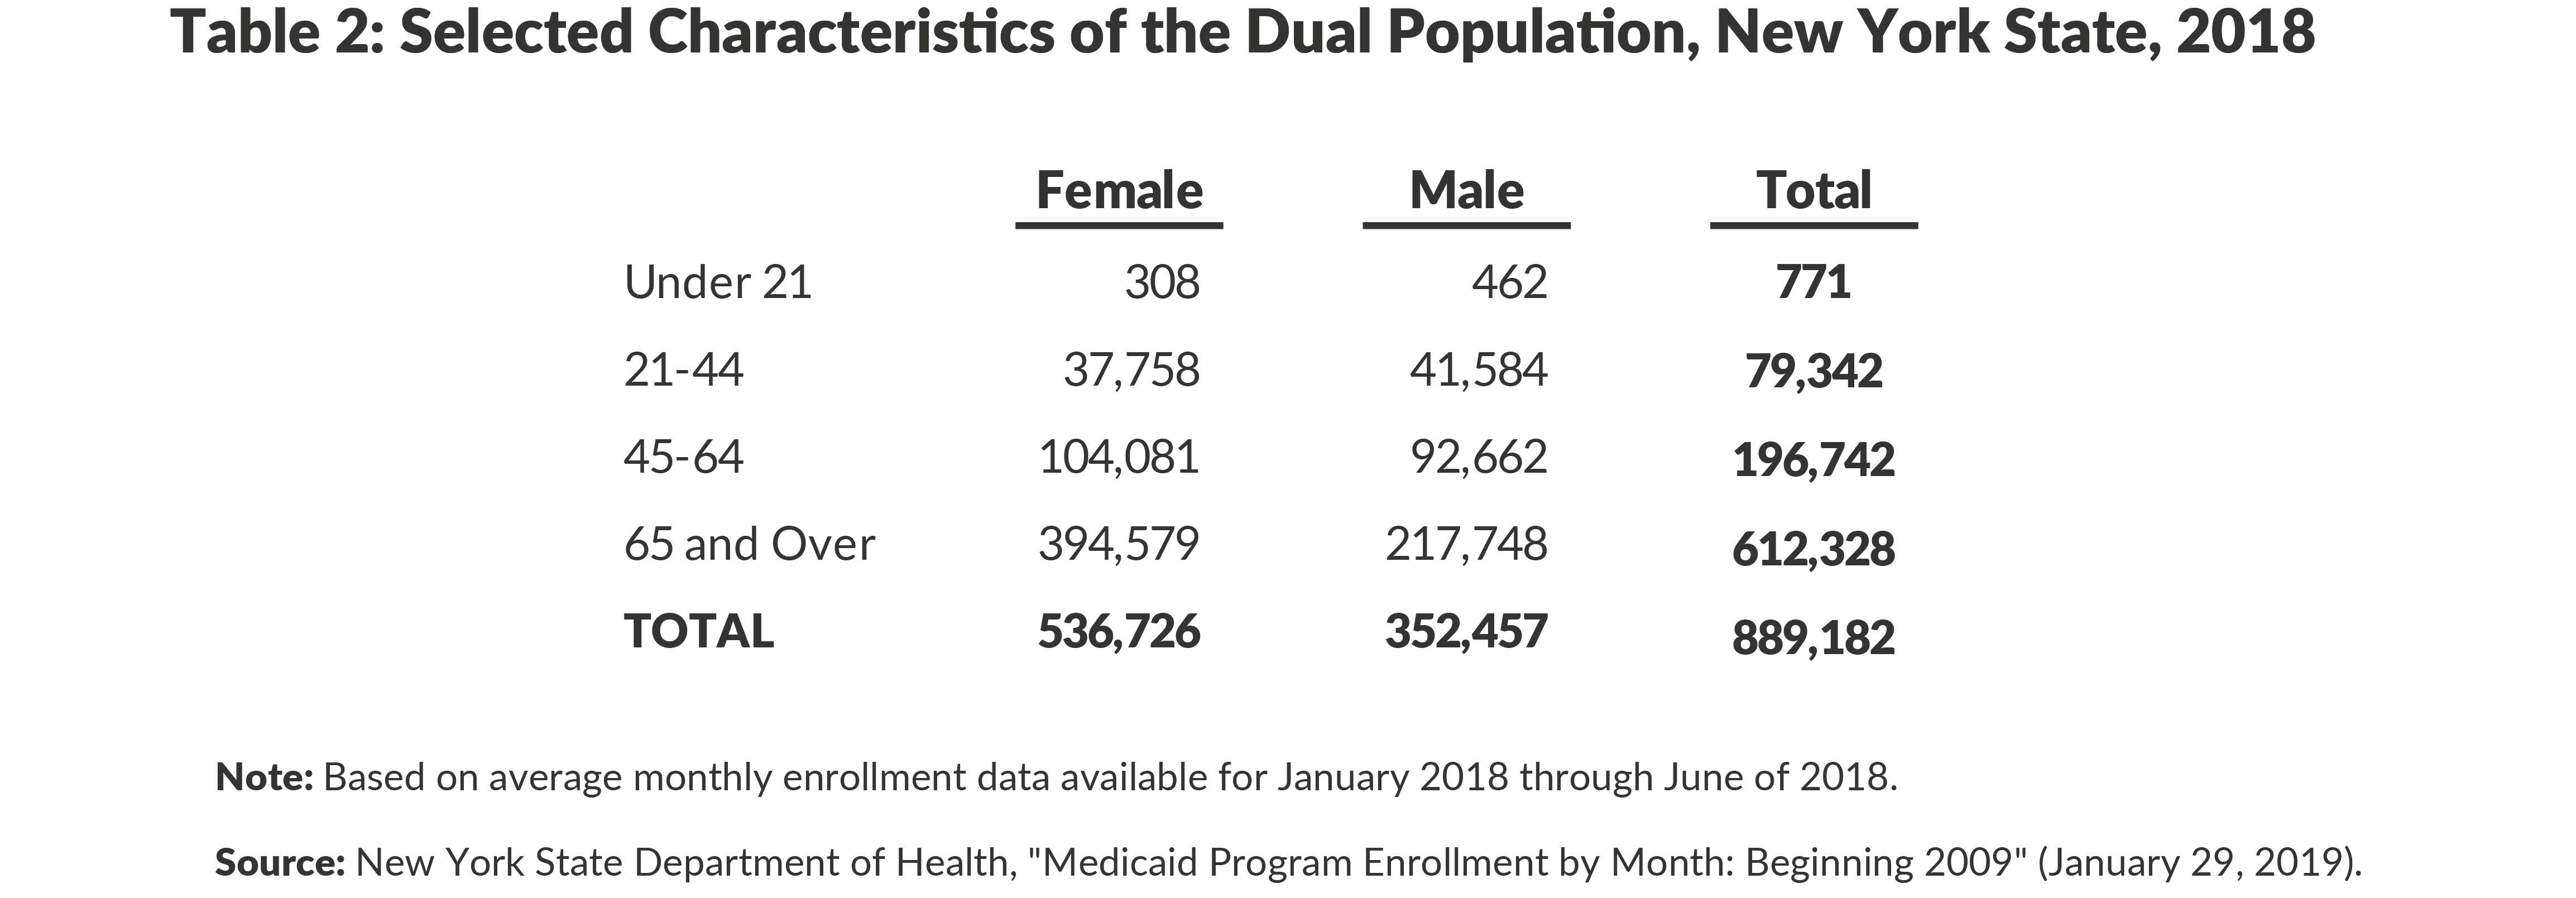 Table 2: Selected Characteristics of the Dual Population, New York State, 2018